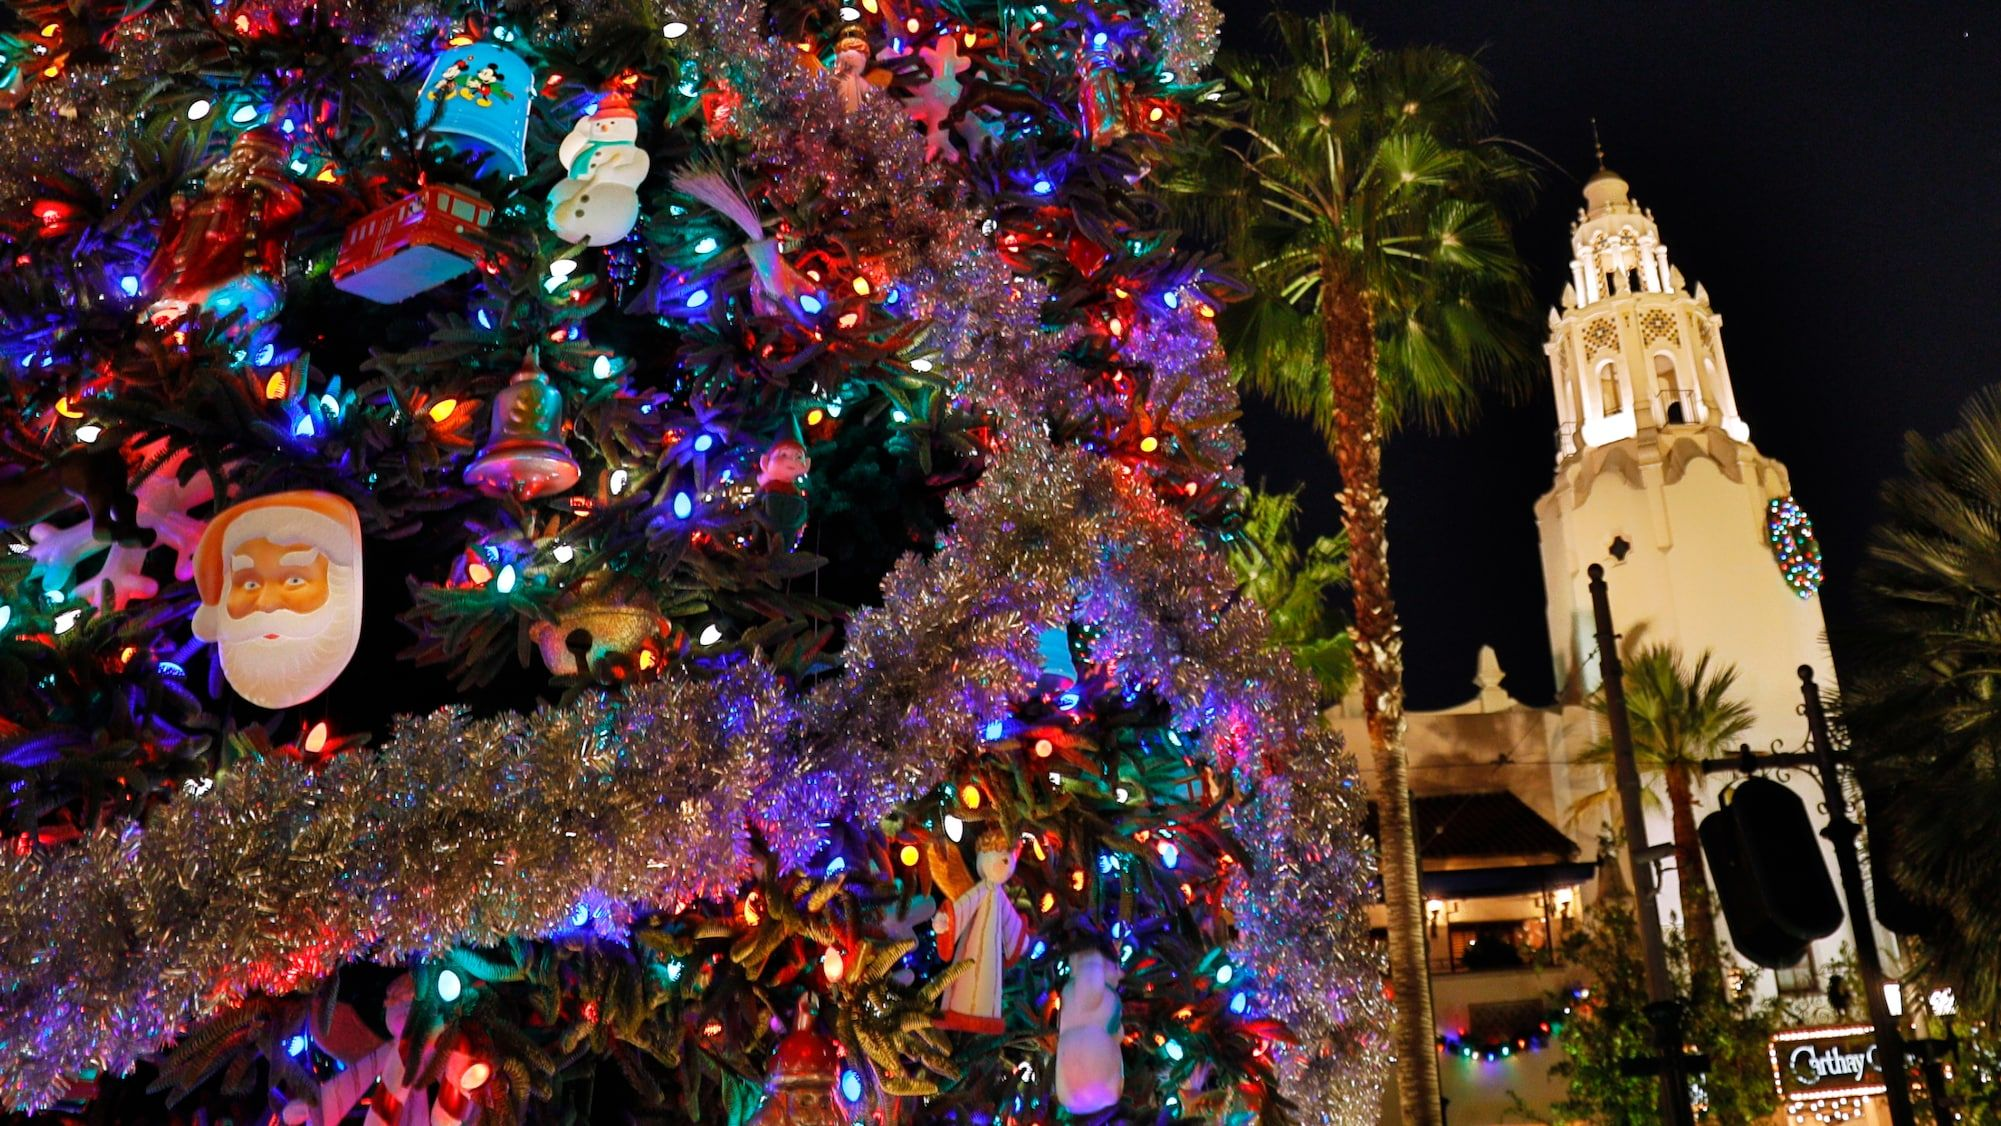 November Christmas Tree Lighting In Southern California 2020 2020 Disneyland Christmas Guide: Dates, Tips, Decorations, and